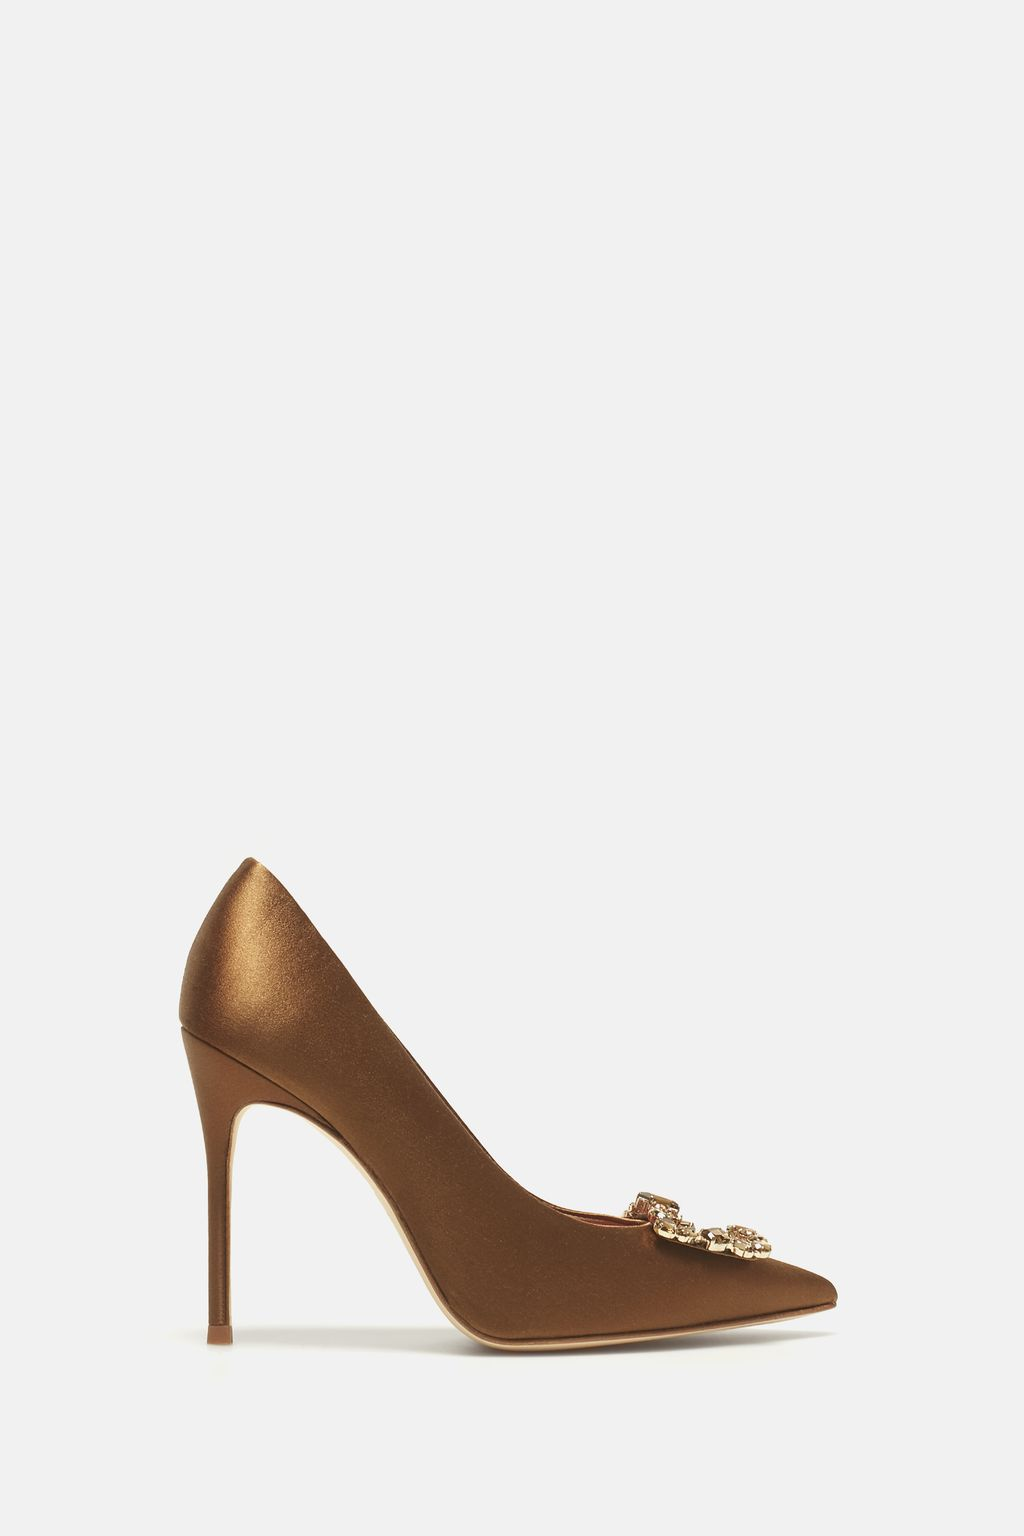 Satin pumps with jewel